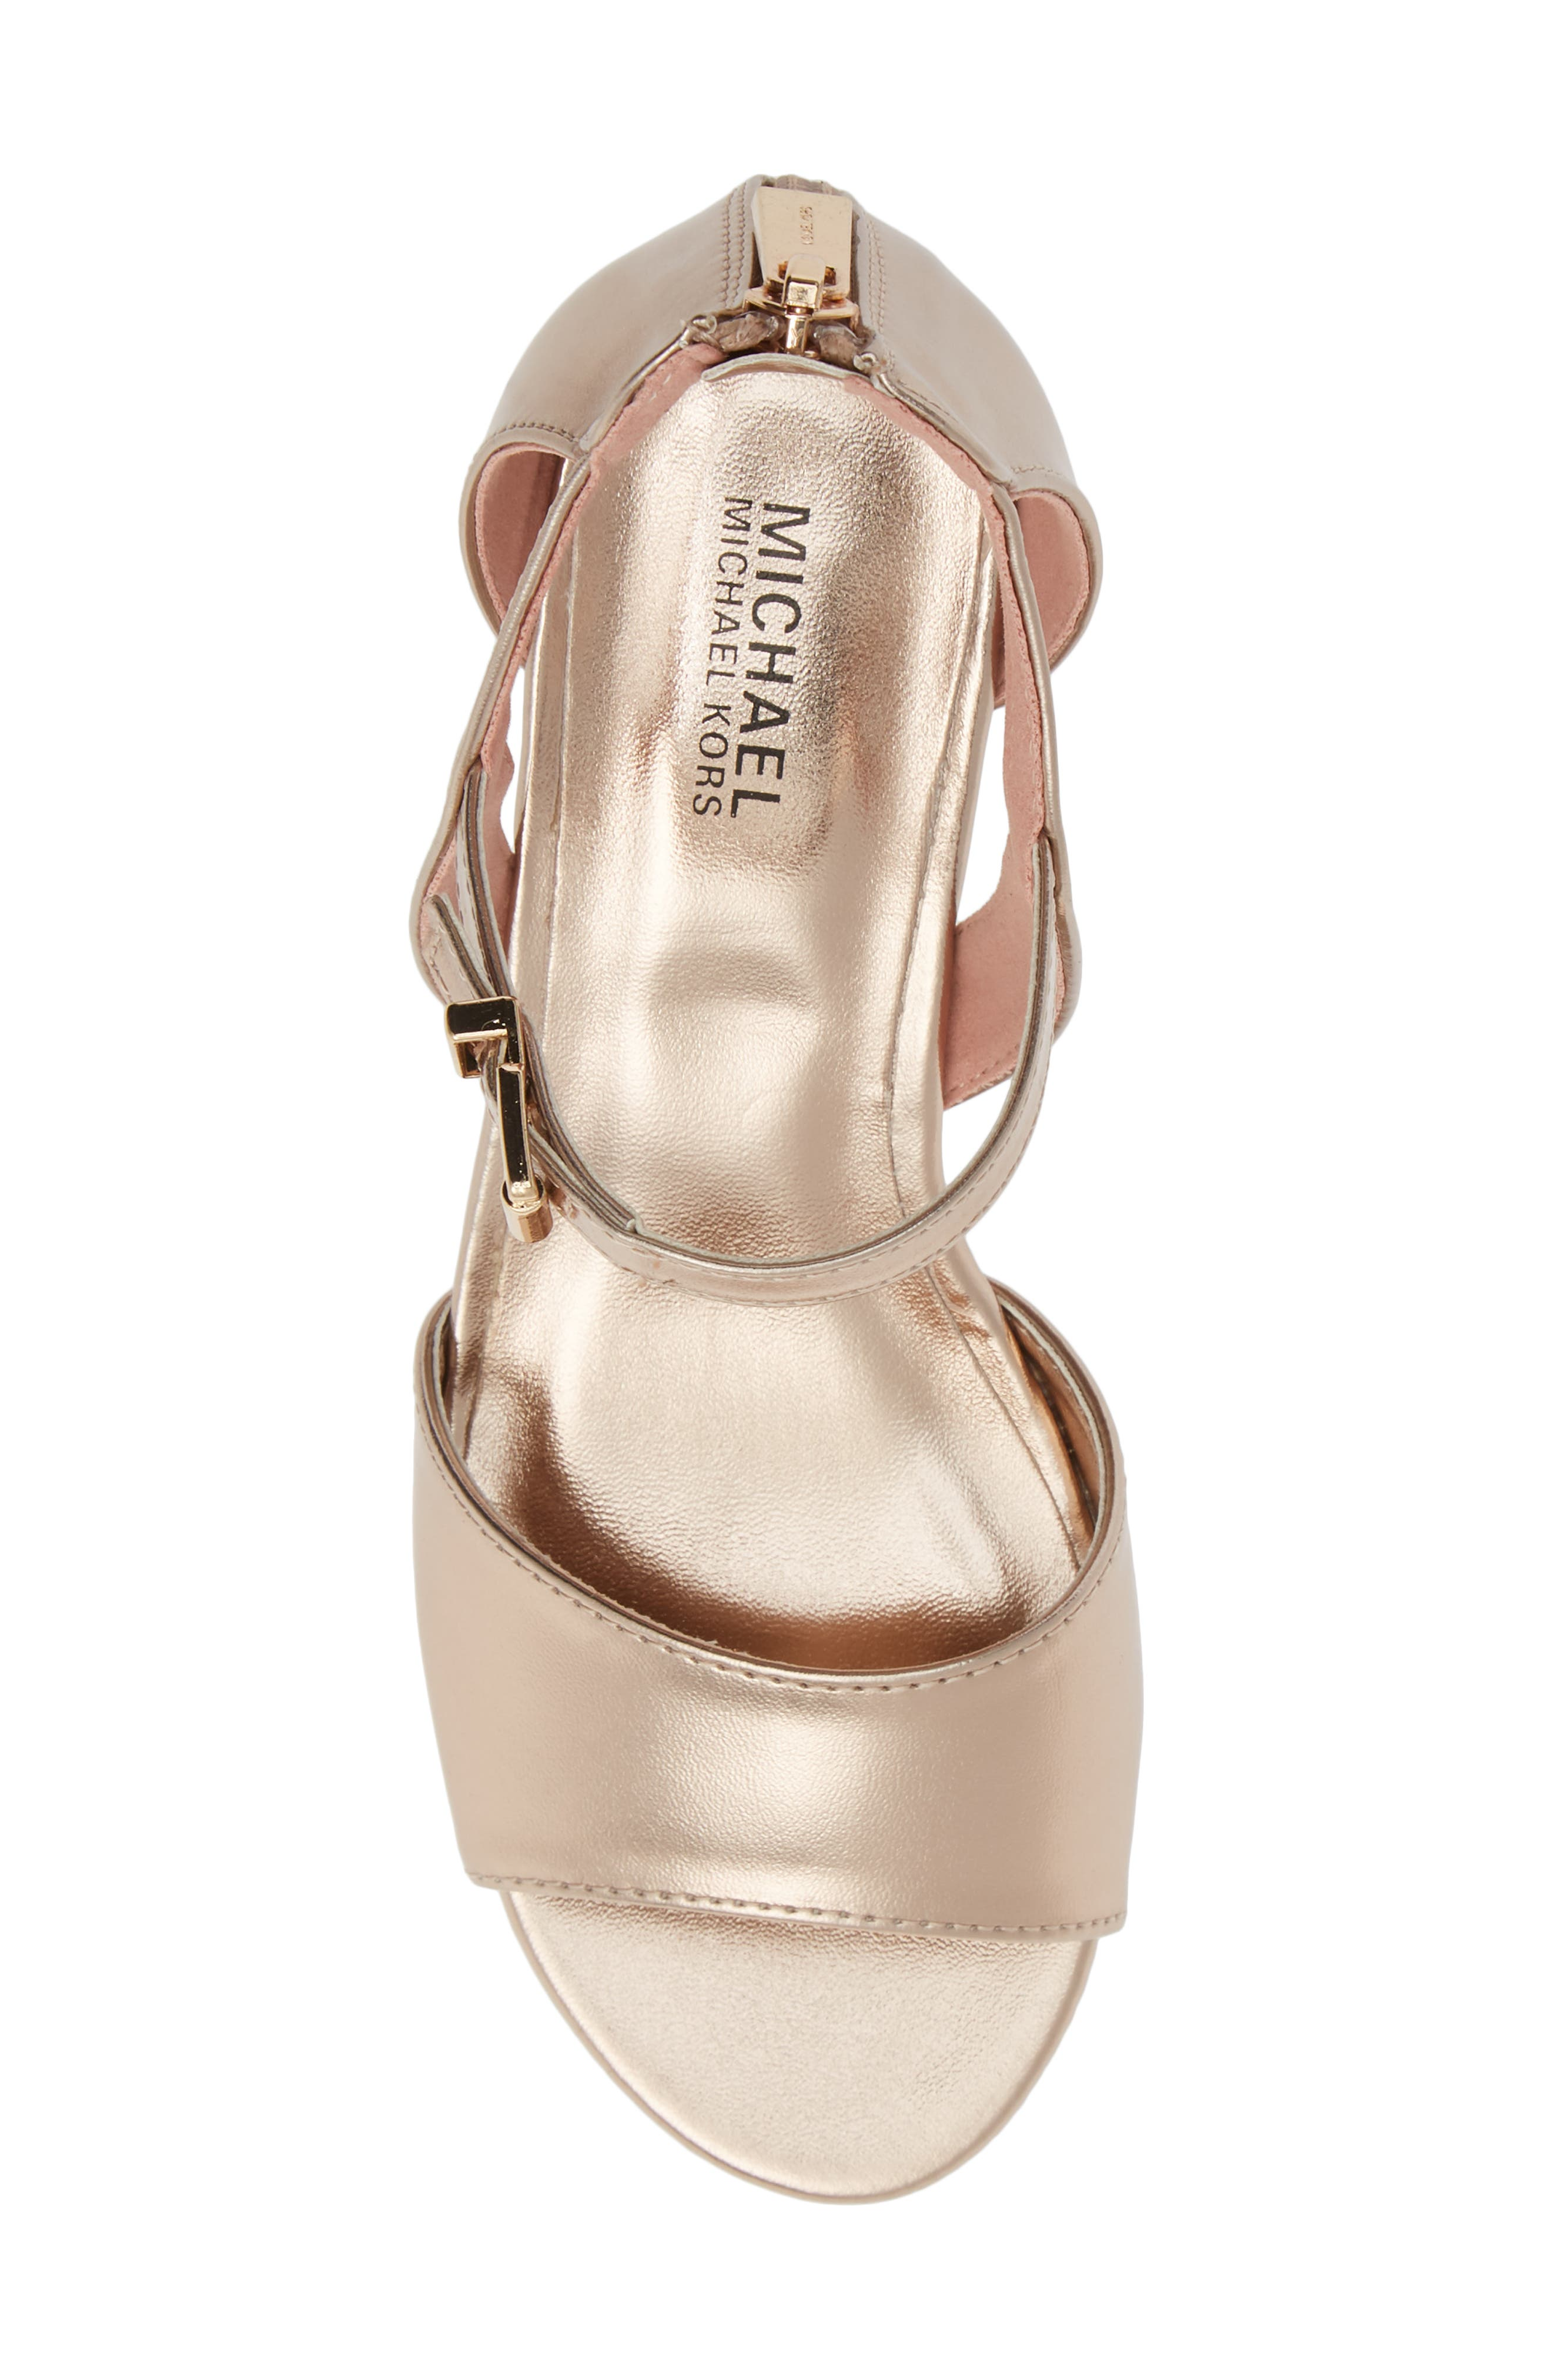 Gemini Jones Sandal,                             Alternate thumbnail 5, color,                             ROSE GOLD